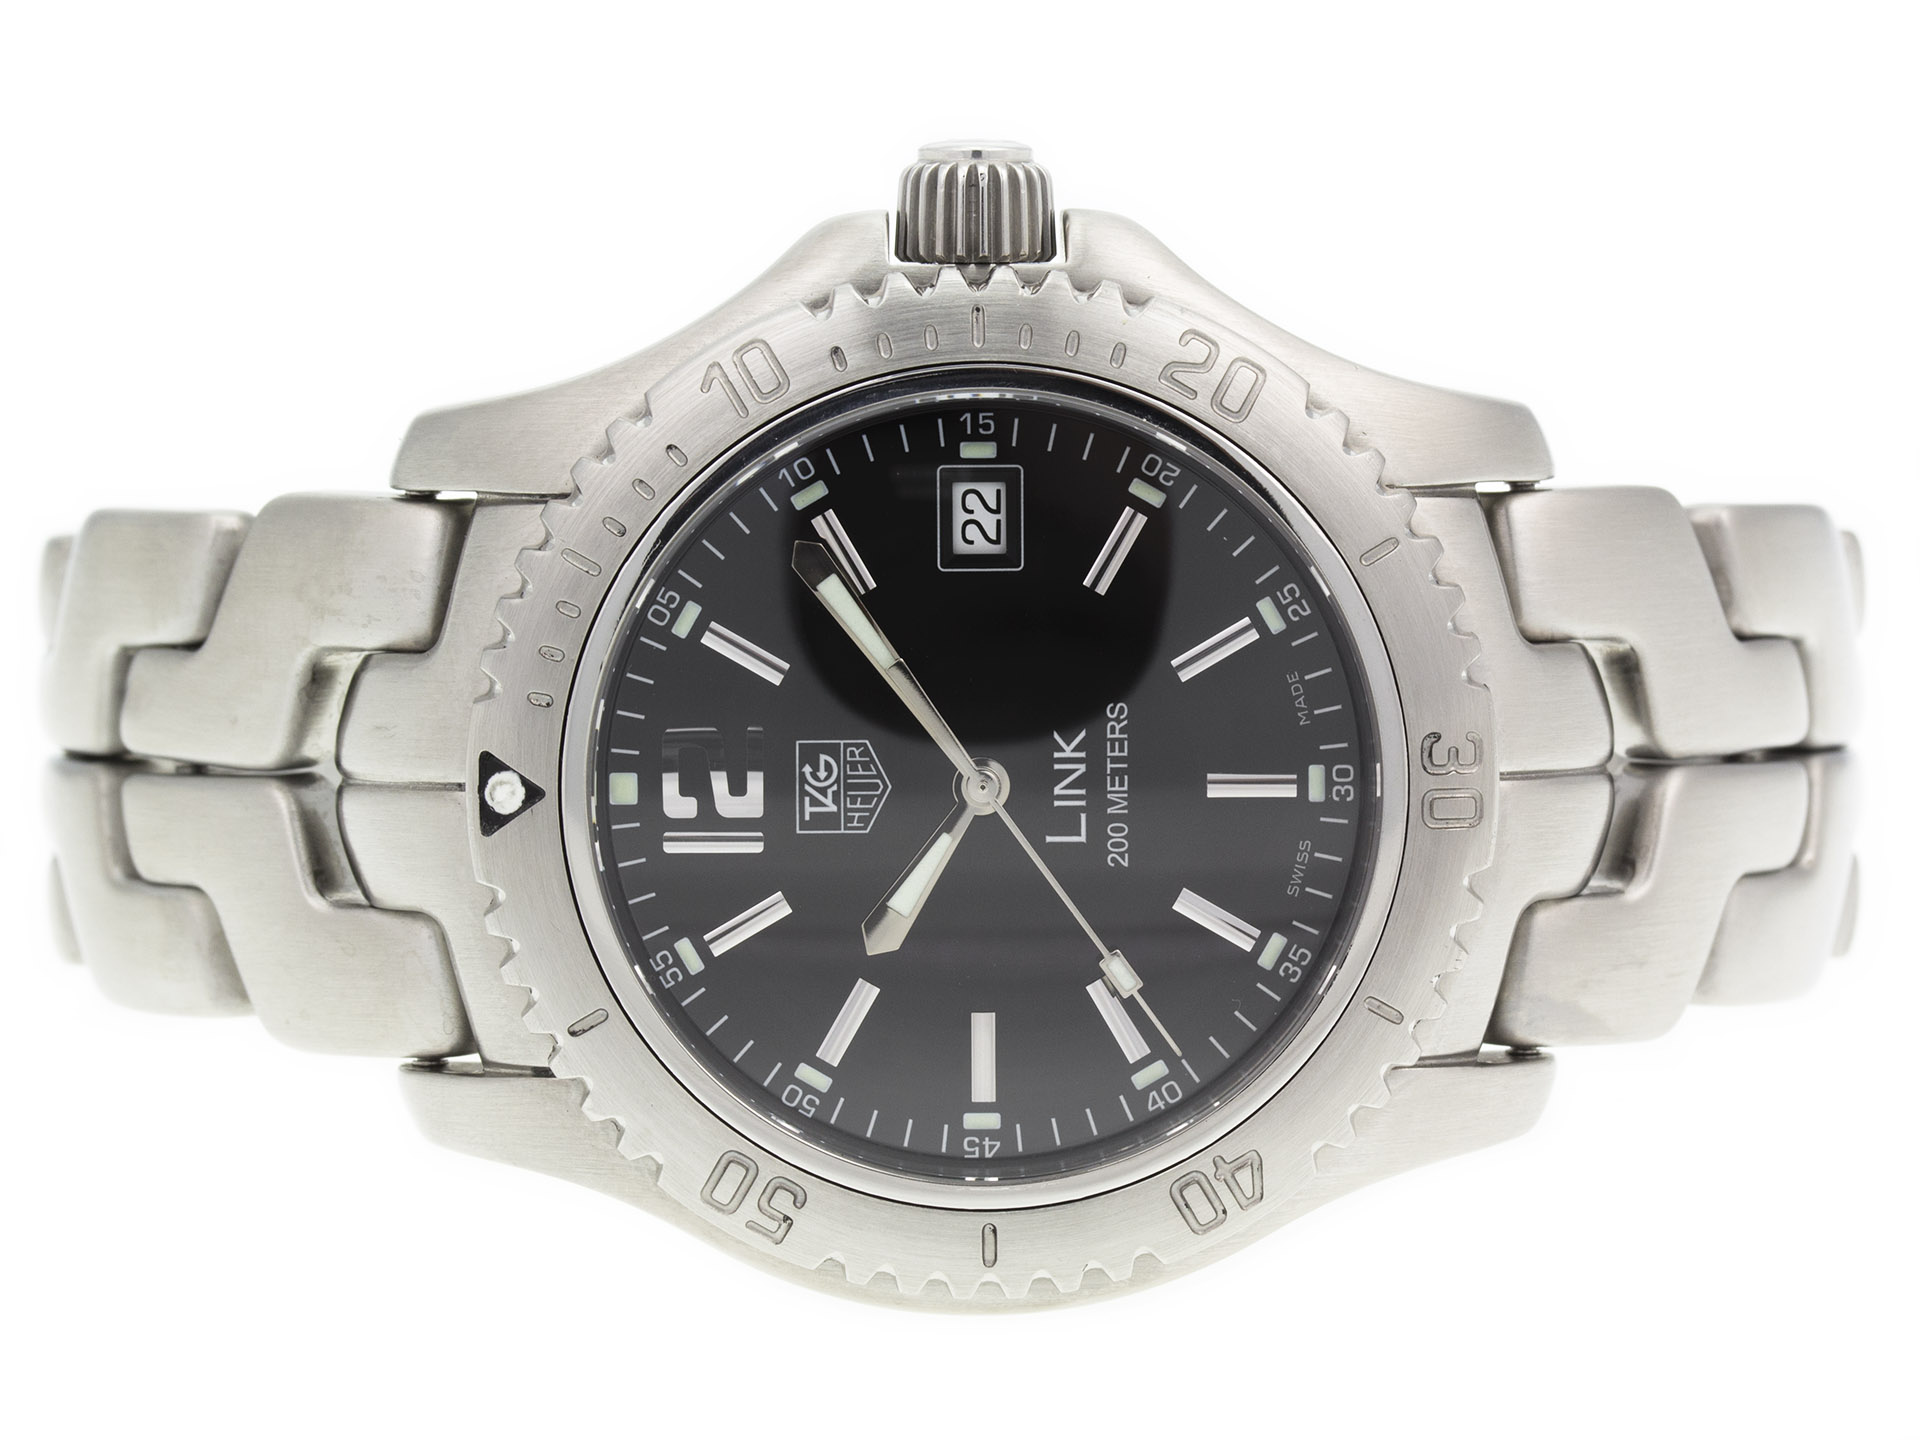 Tag heuer link wt1110 ba0550 precision watches jewelry for Tag heuer d link